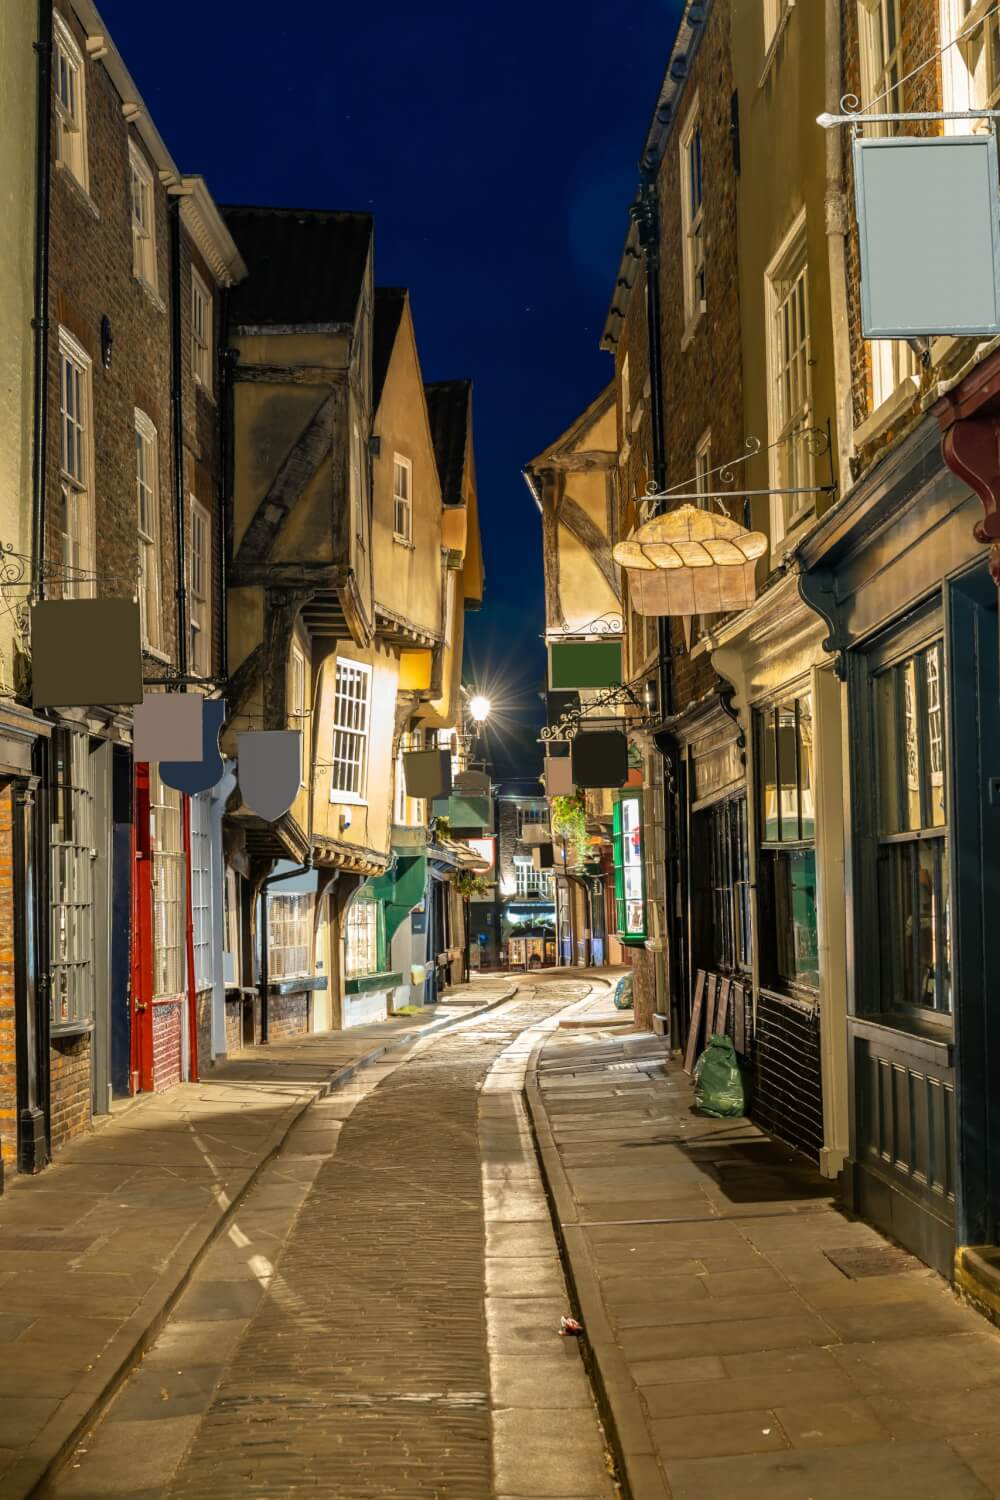 The Shambles by night in York, England.